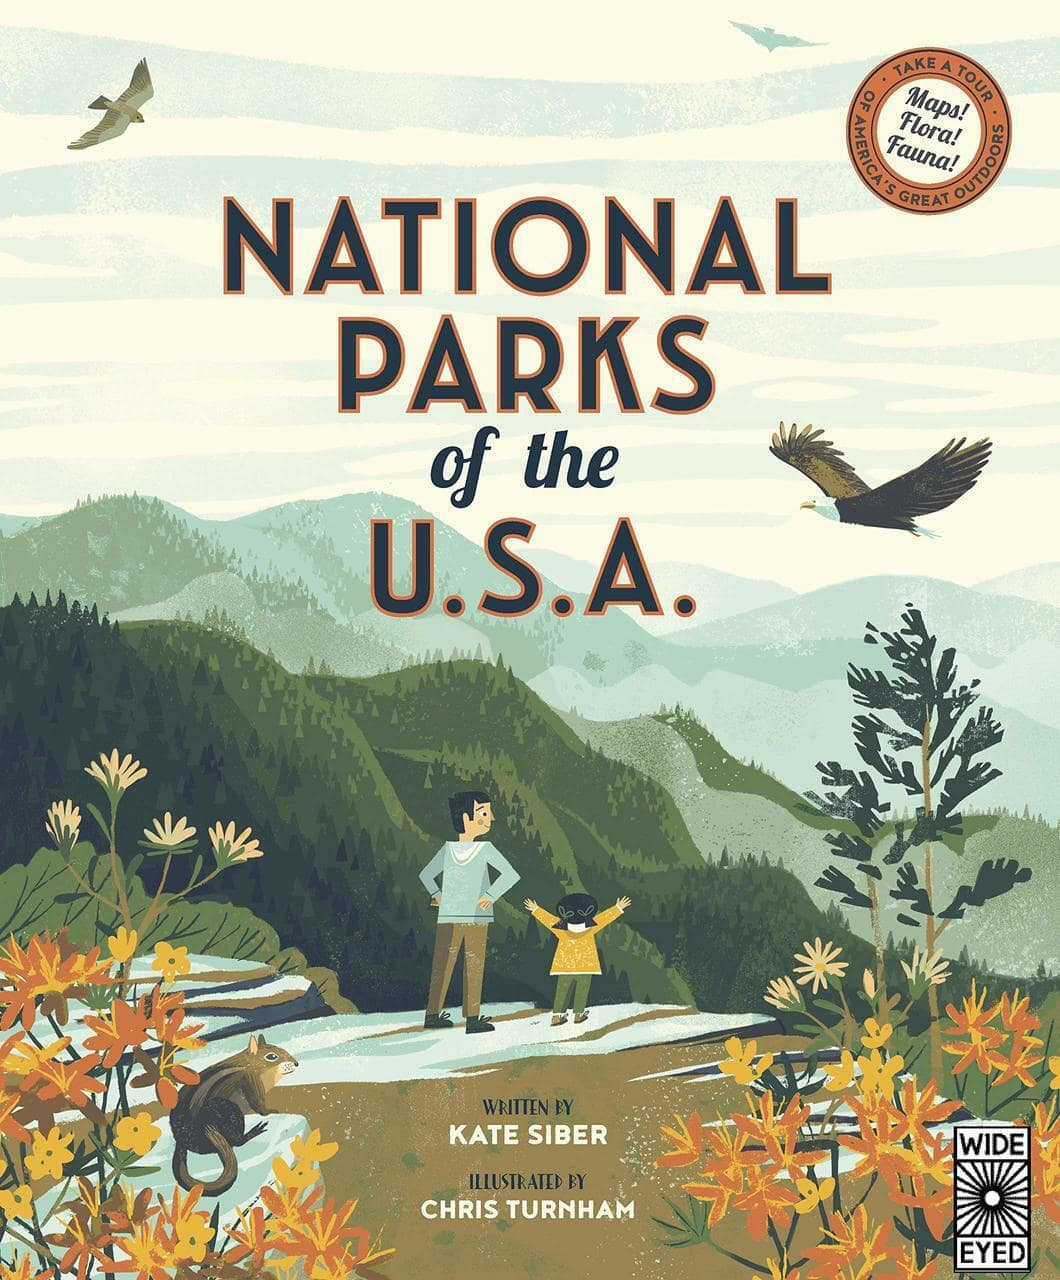 National Parks USA by Kate Siber (49% off) $15.22